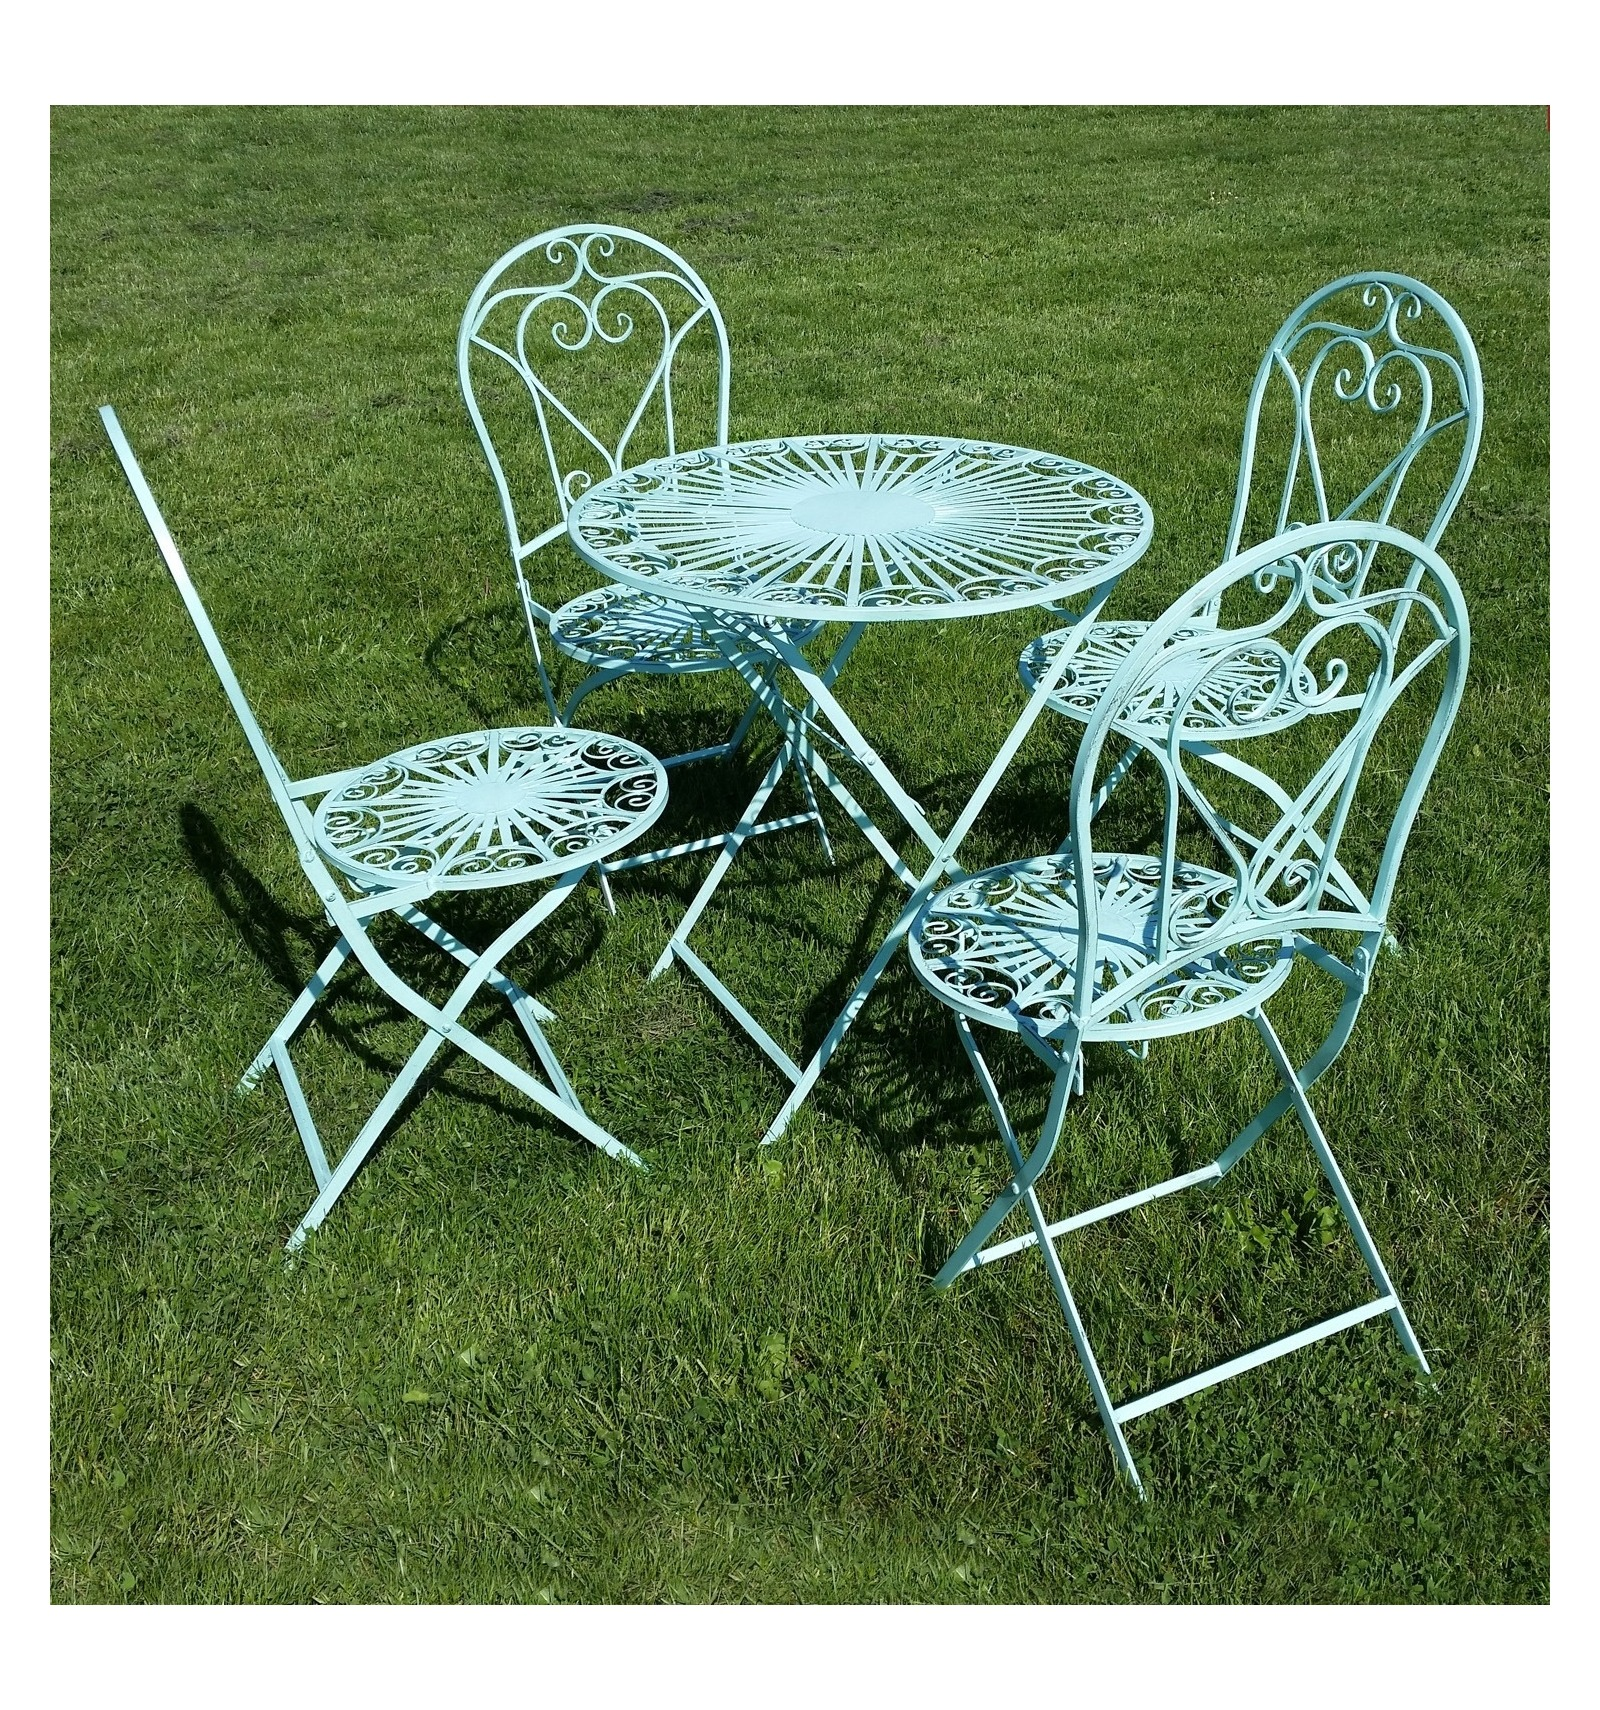 garden wrought iron chair and table. Black Bedroom Furniture Sets. Home Design Ideas